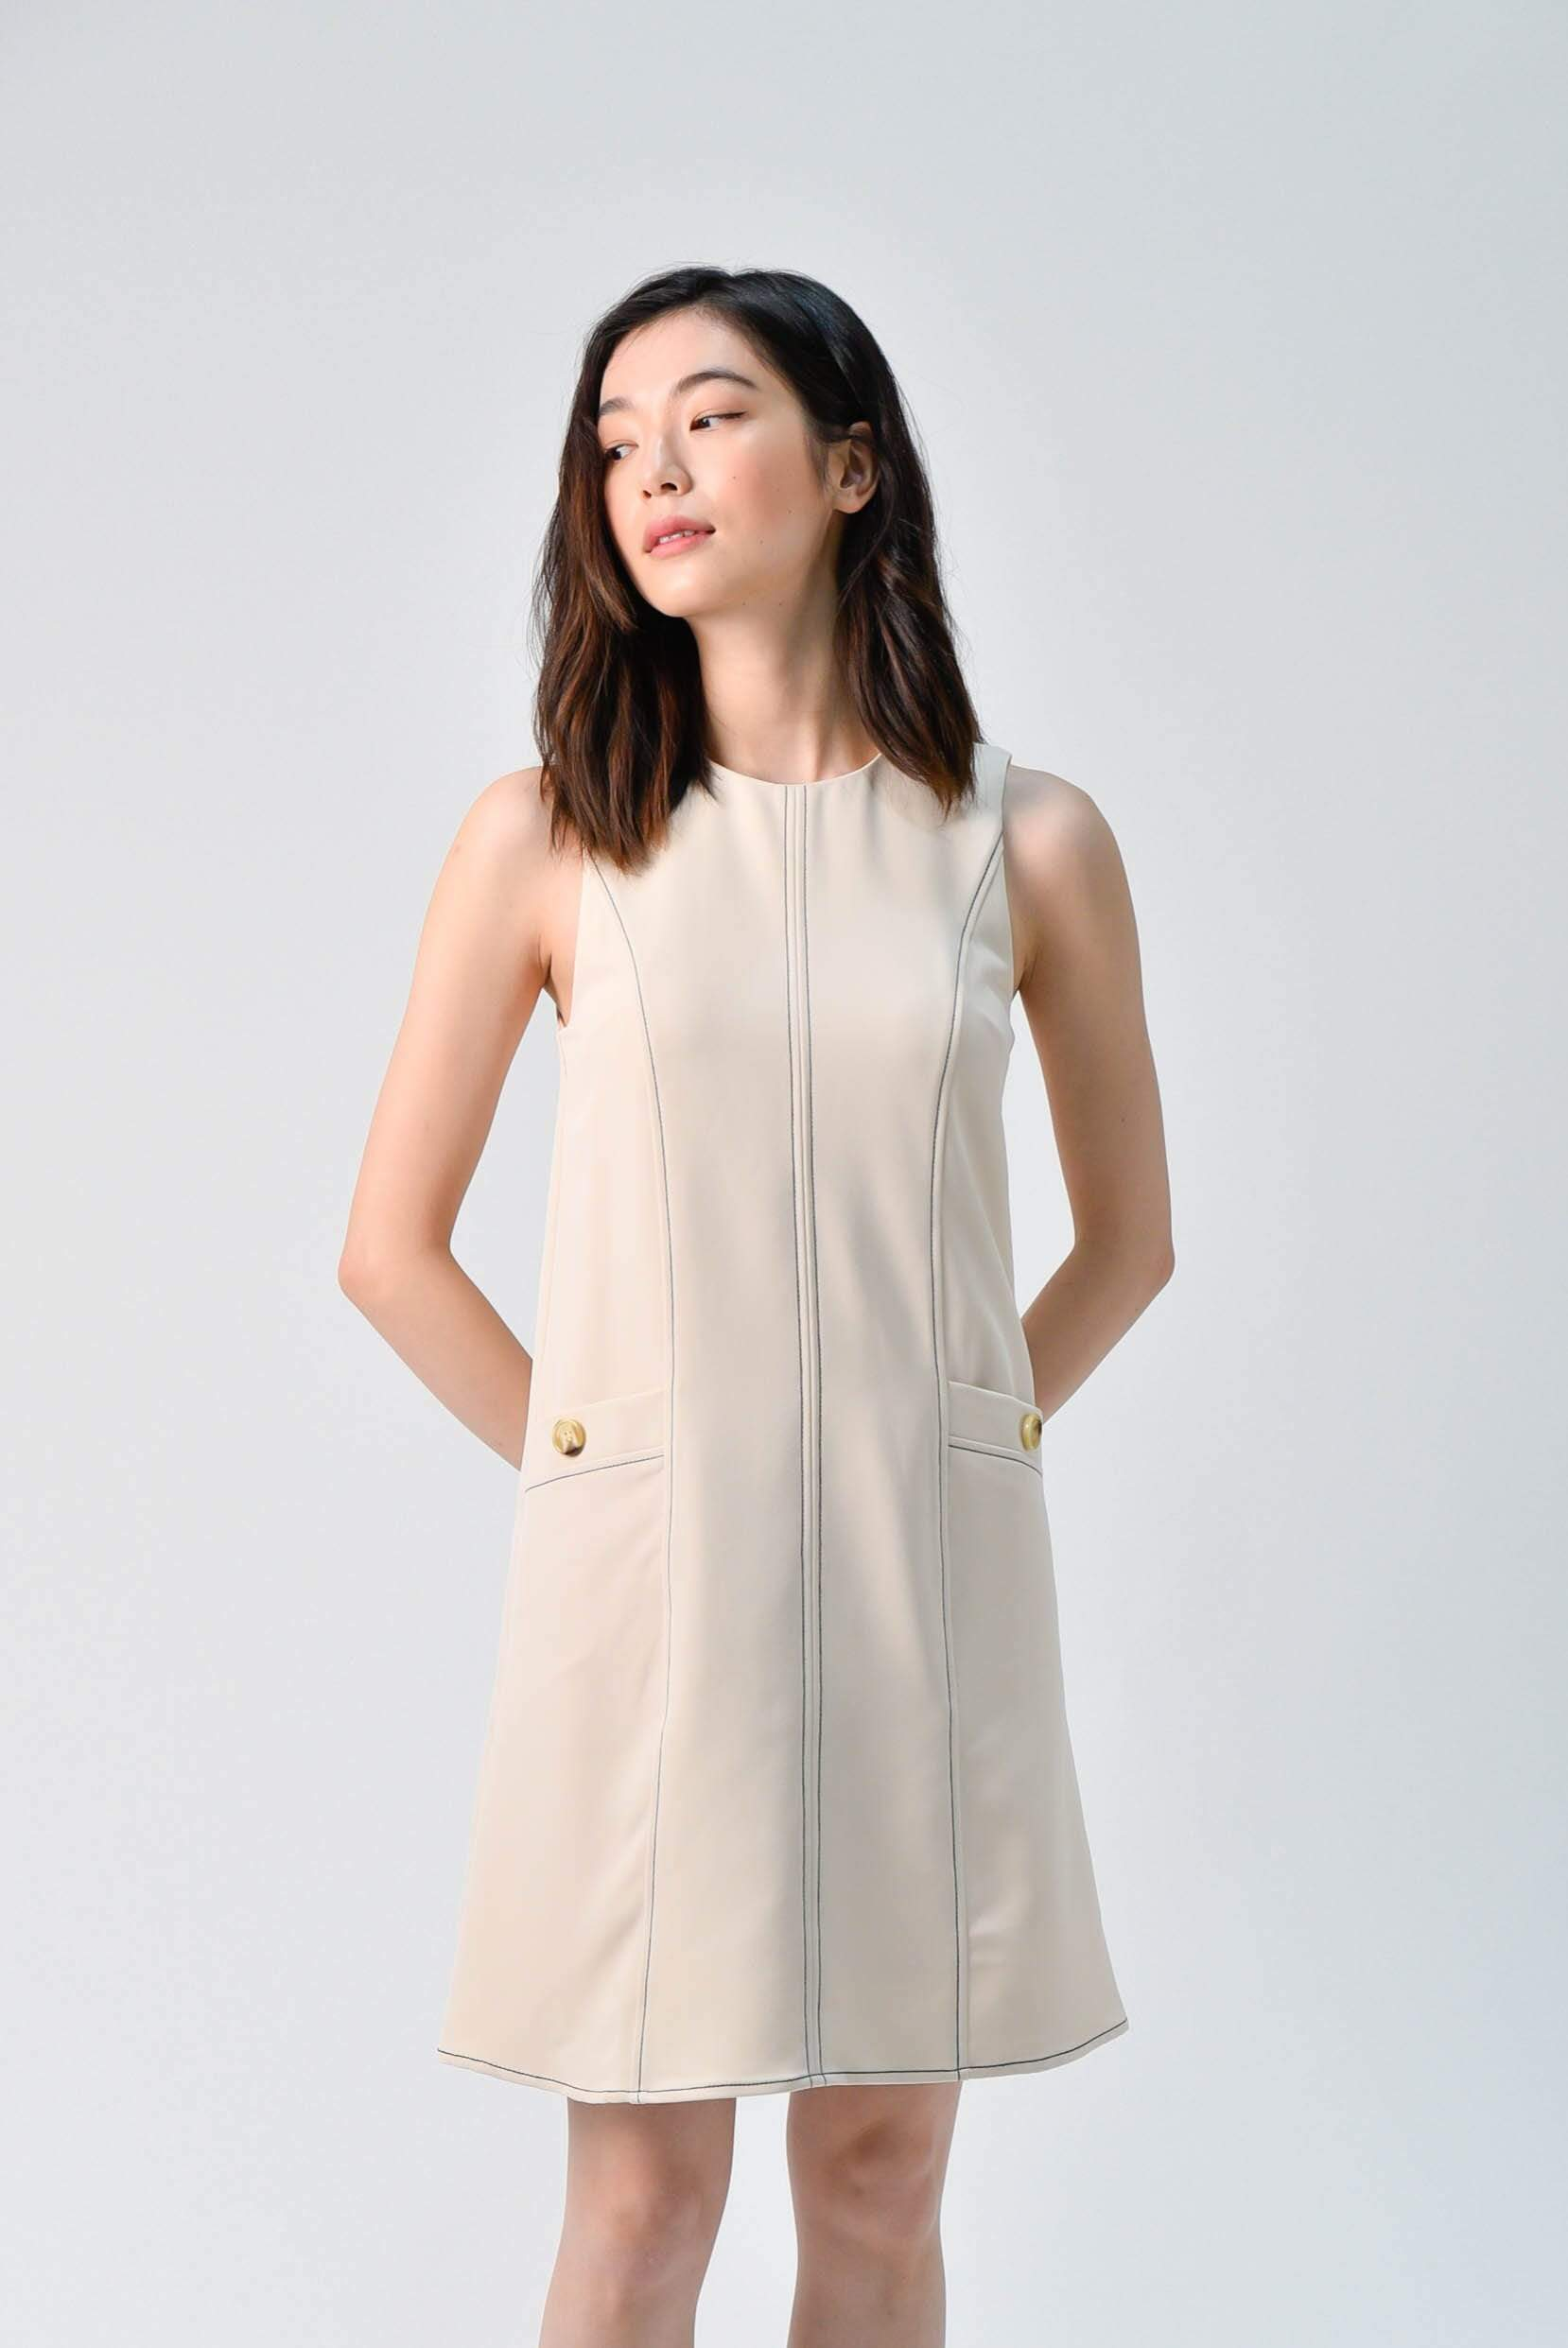 STITCHED SHIFT DRESS IN BEIGE